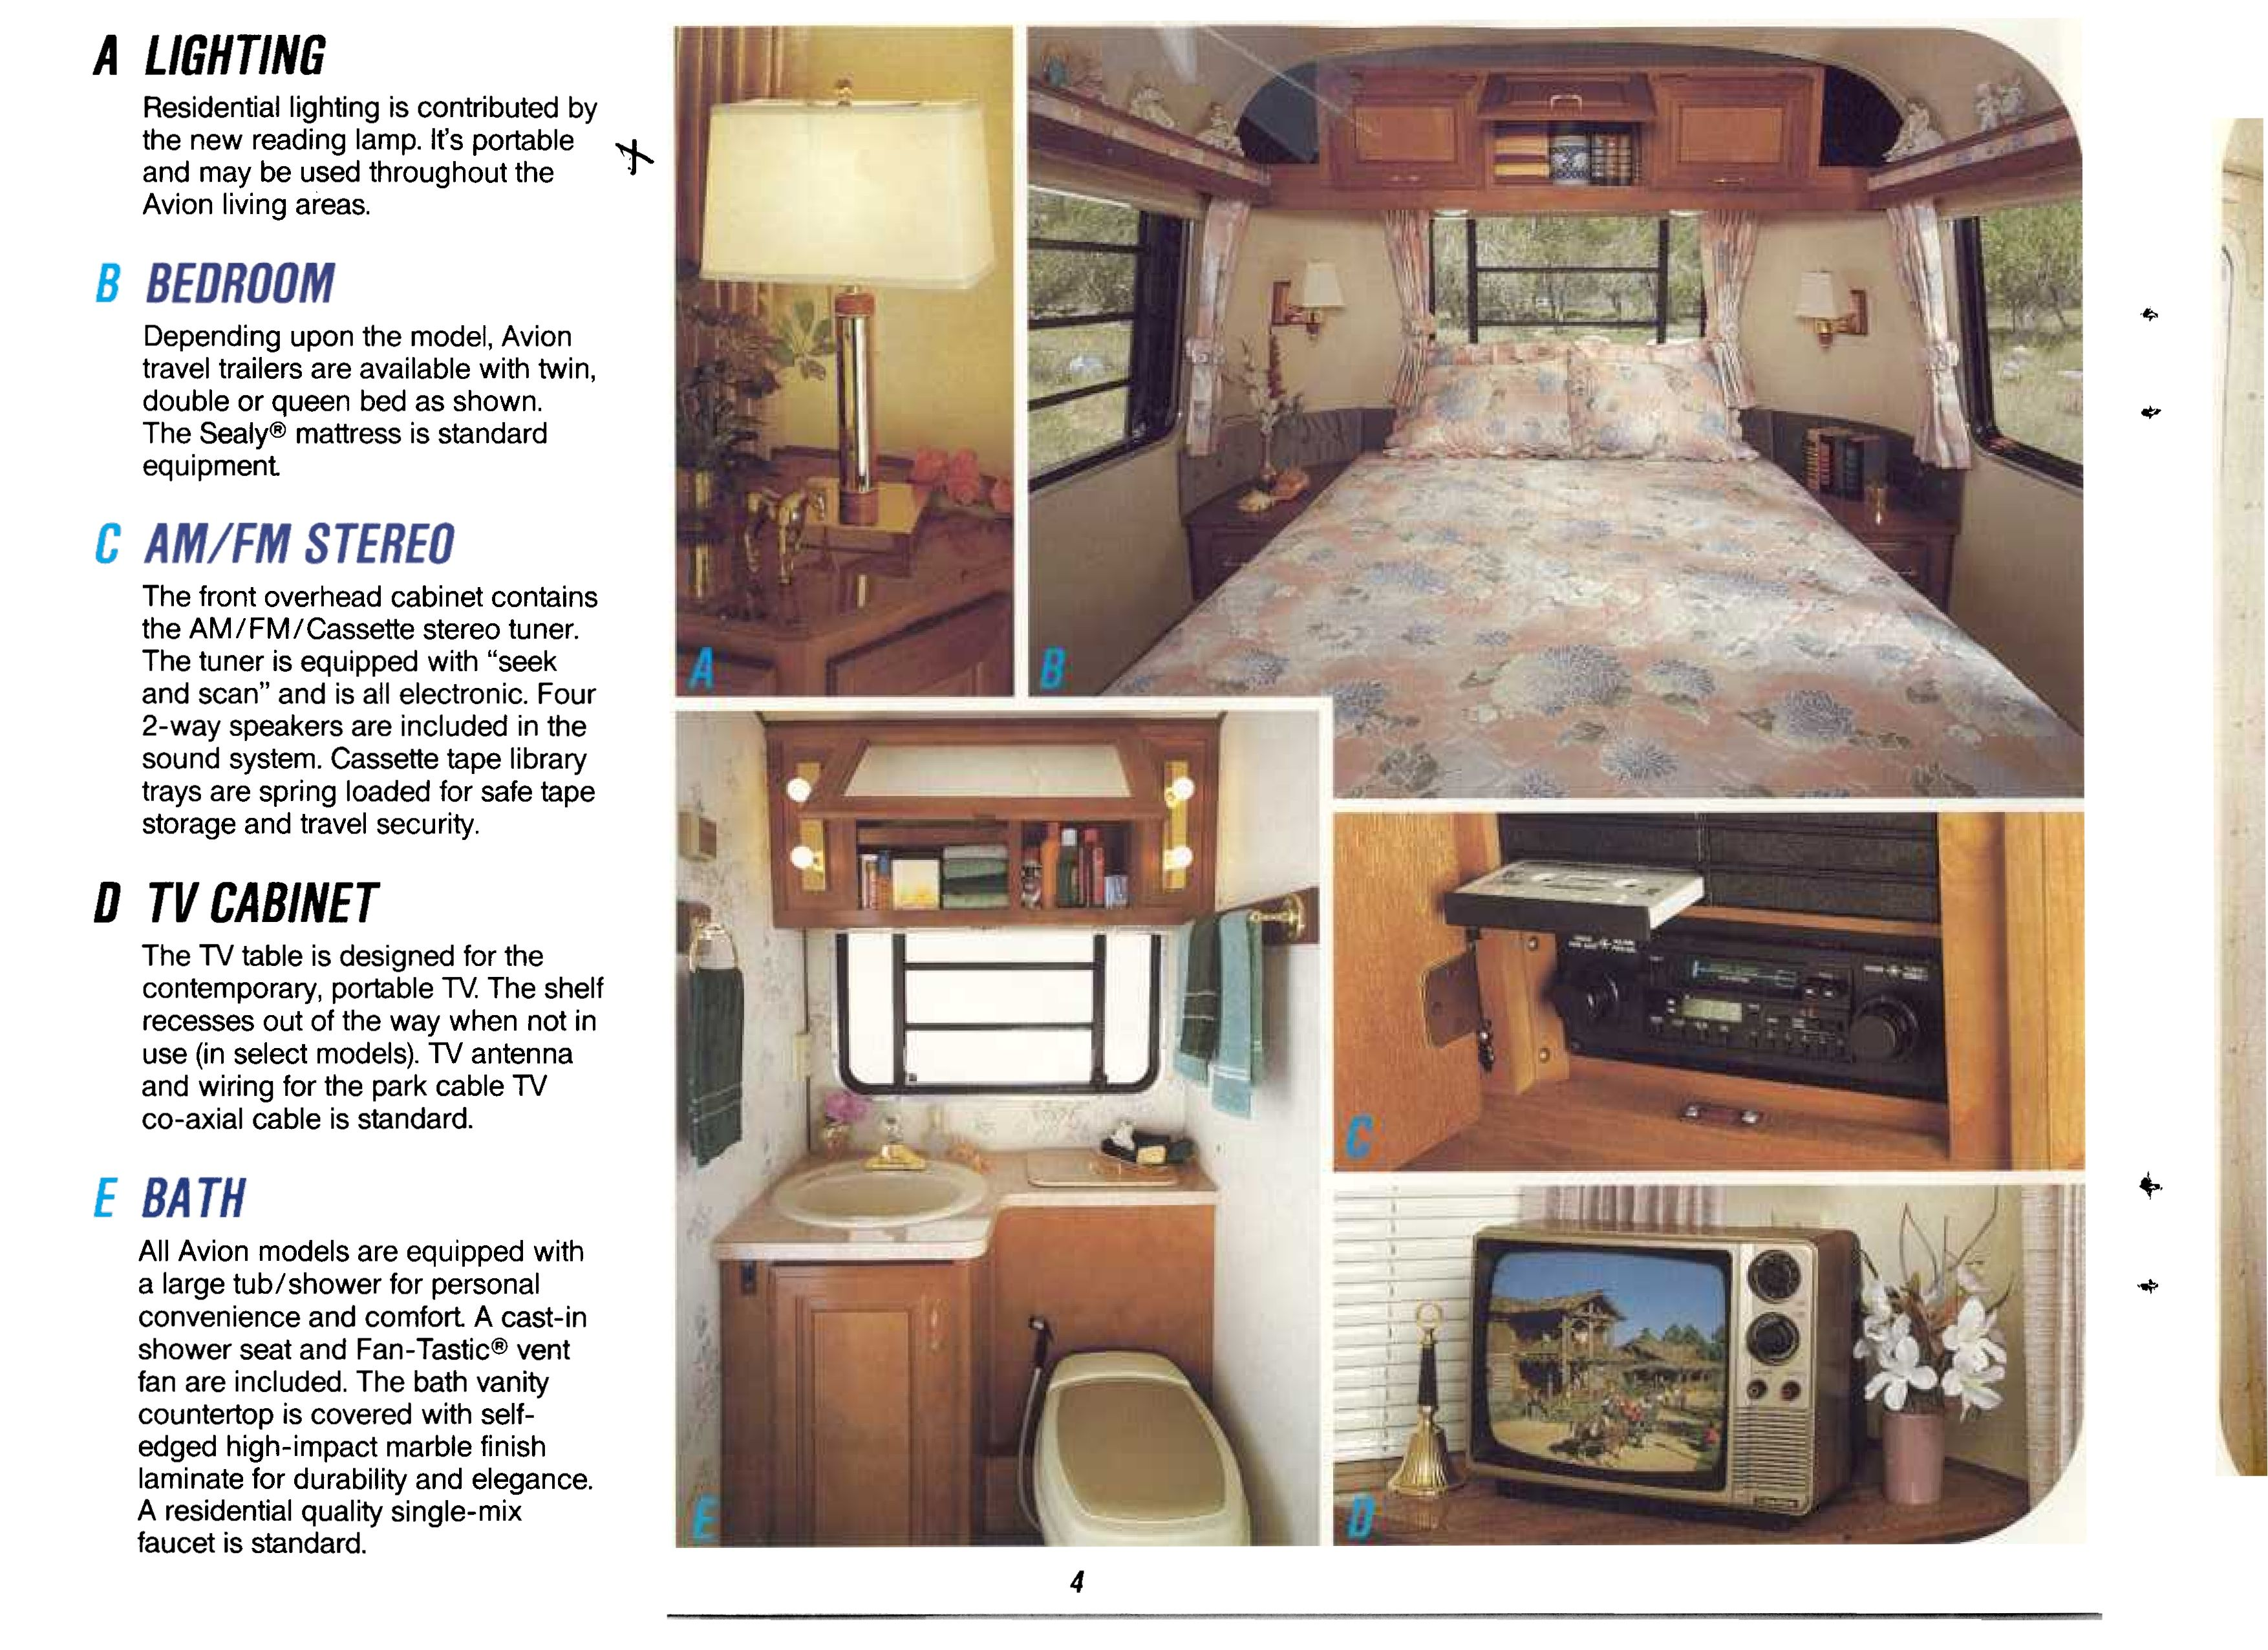 Avion Travelcade Club Travel Former Member Fifth Wheel Fleetwood 1974 Mobile Home Electrical Wiring Diagram 5